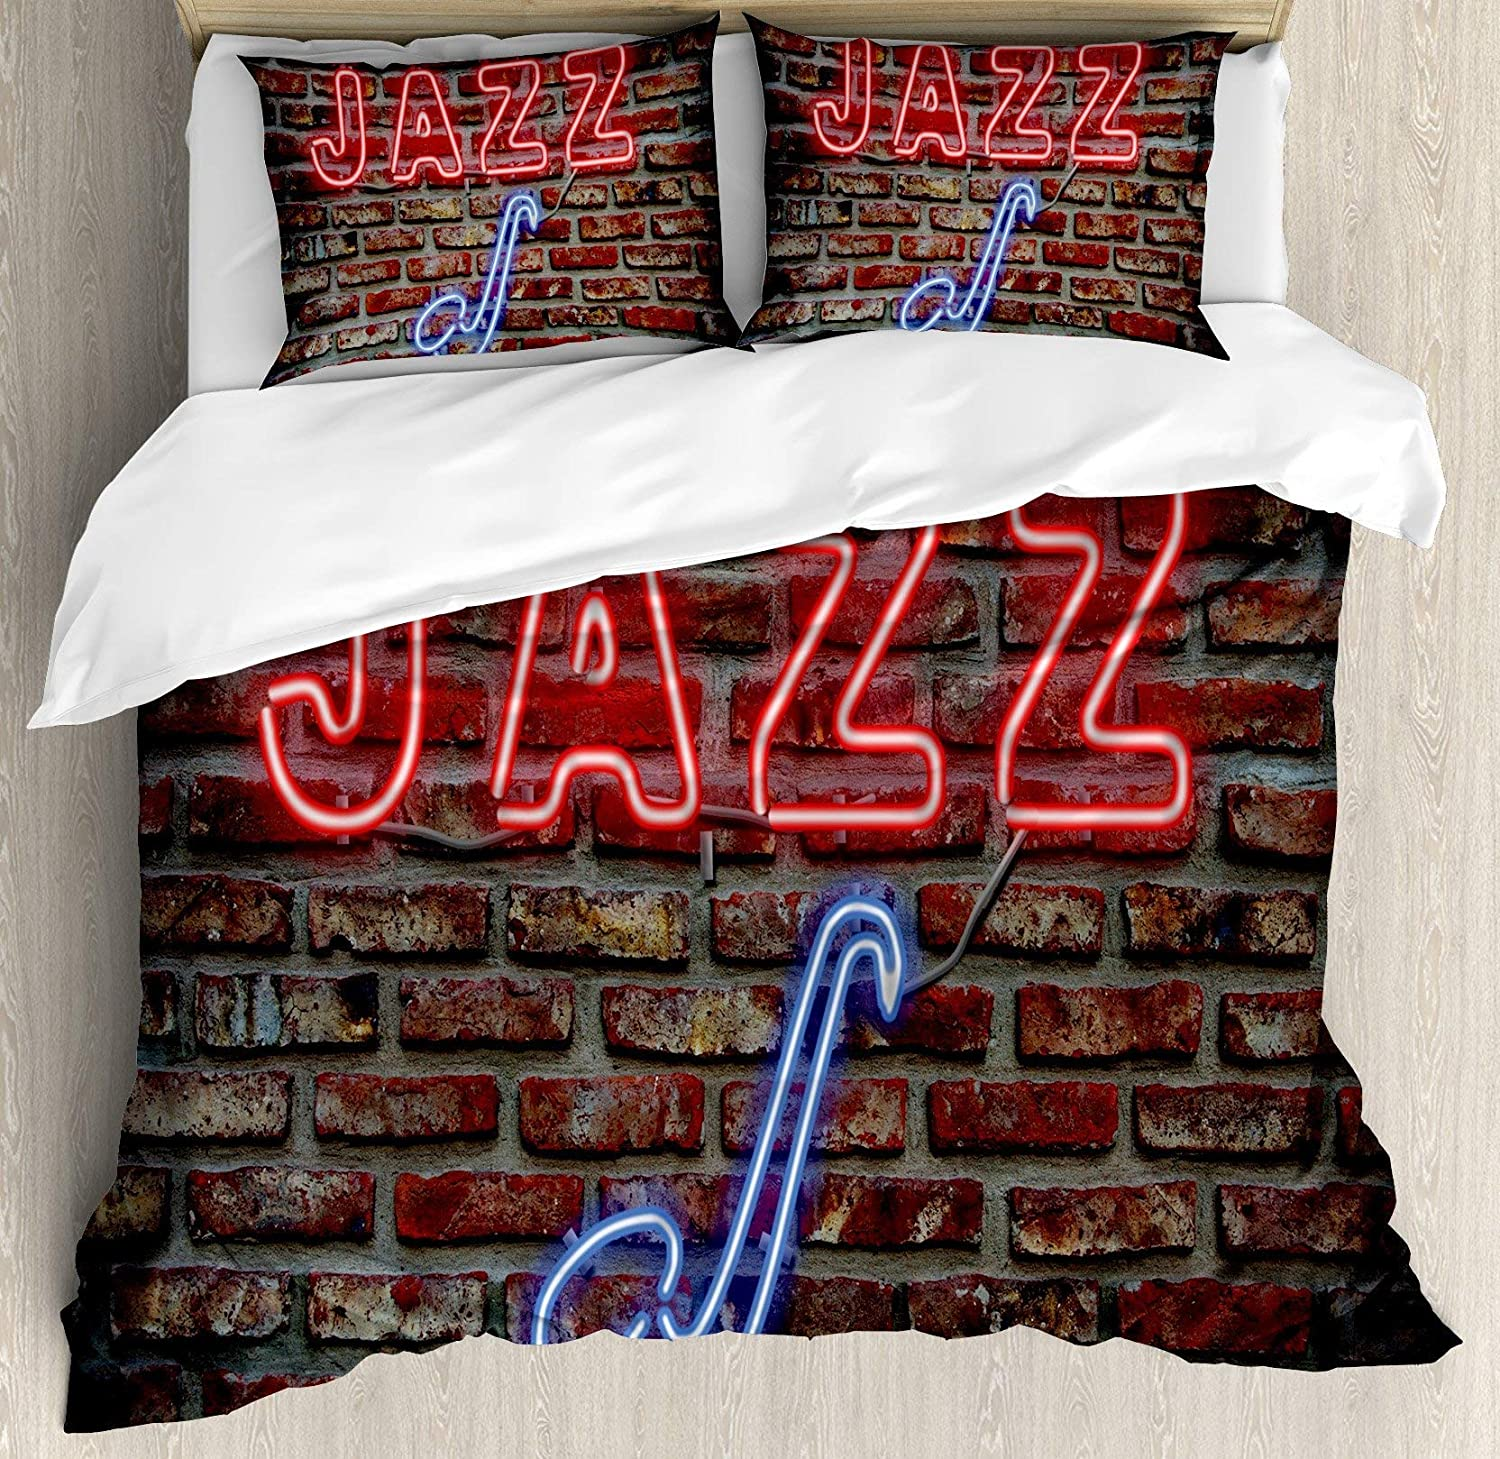 Music 4pc Bedding Set Full Size, Image Alluring Neon All Jazz Sign Saxophone Instrument on Brick Wall Print Floral Lightweight Microfiber Duvet Cover Set, Red bluee